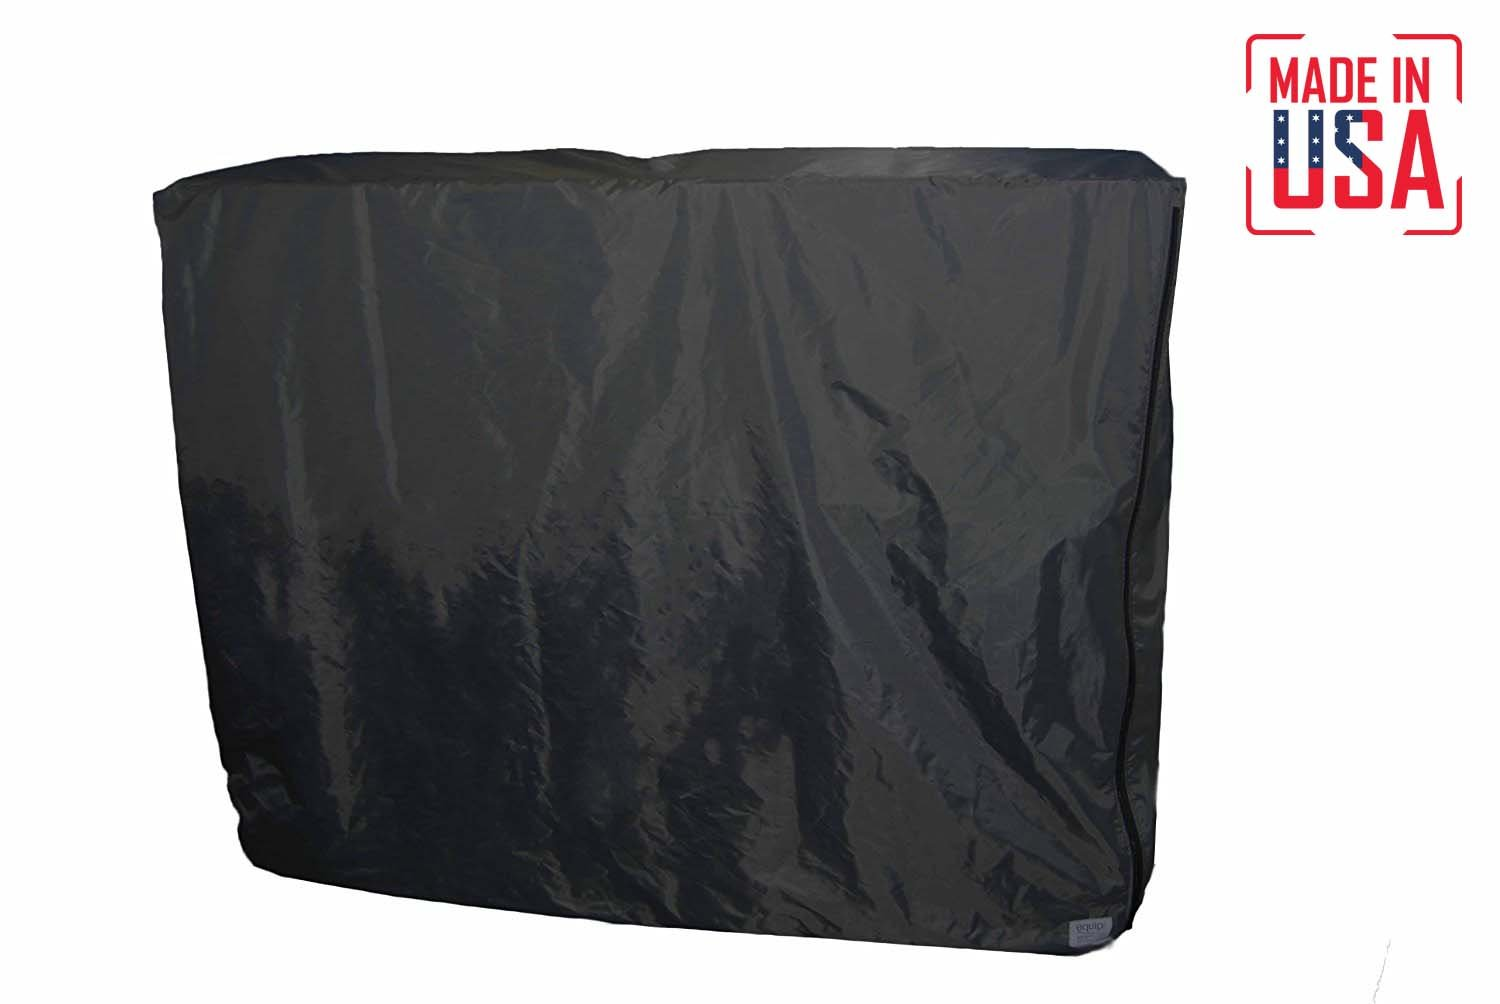 THE BEST Protective Cover for 6 ft. Table. With Security Cable & Lockable Zipper. Ideal for Trade Shows/Exhibits. Water-Resistant & Fire-Retardant MADE IN USA. 3-Year Warranty. (Black, 500D Polyester)